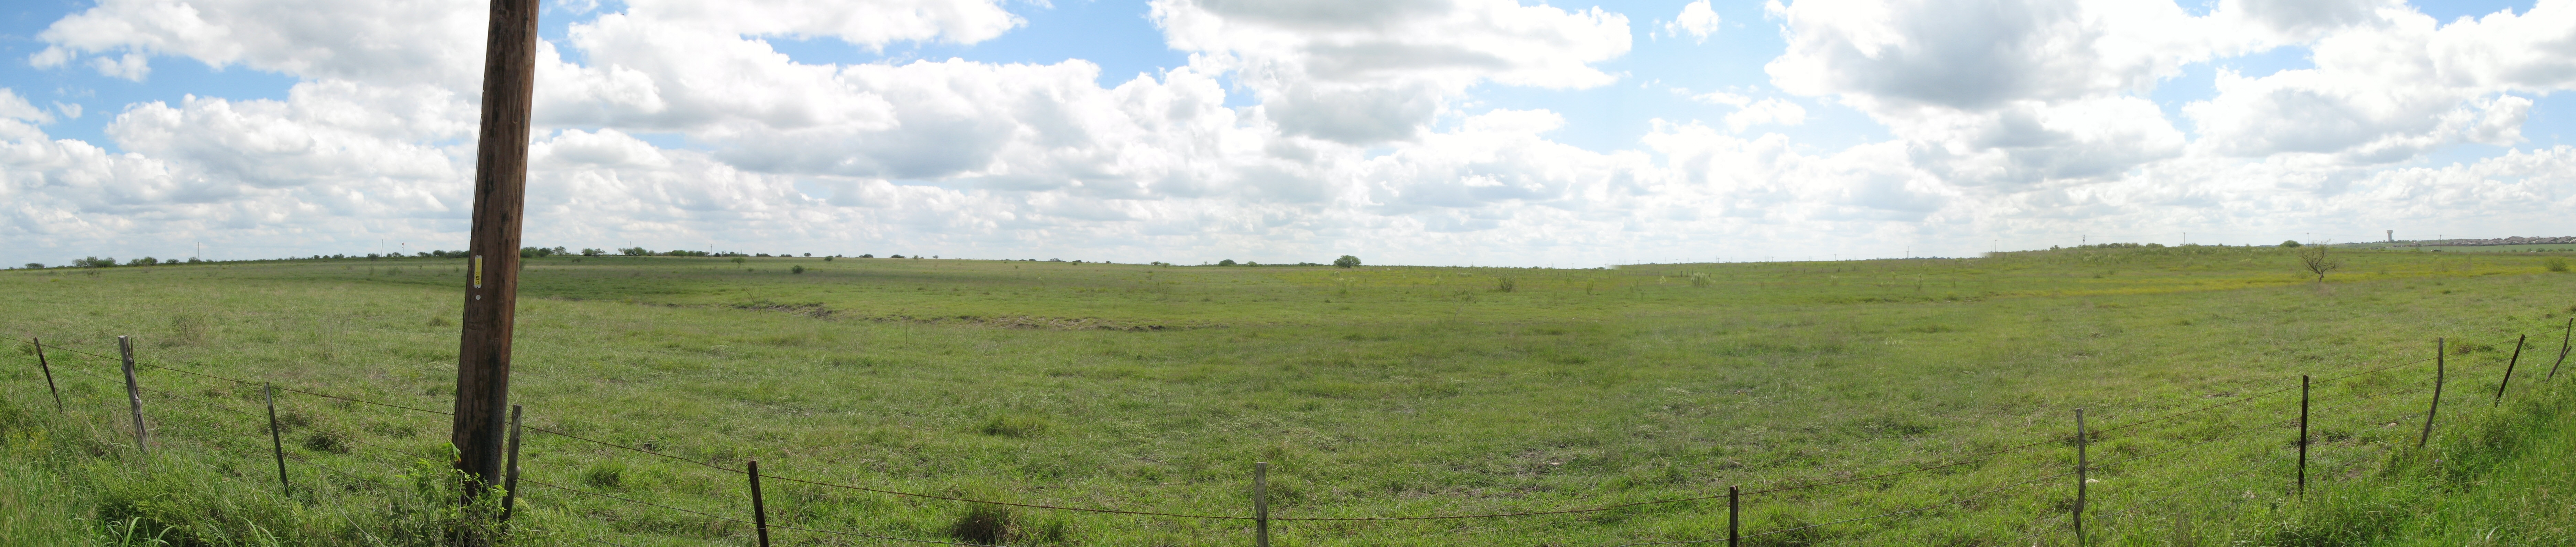 Panorama of where marker was, with ruts somewhat visible from road.